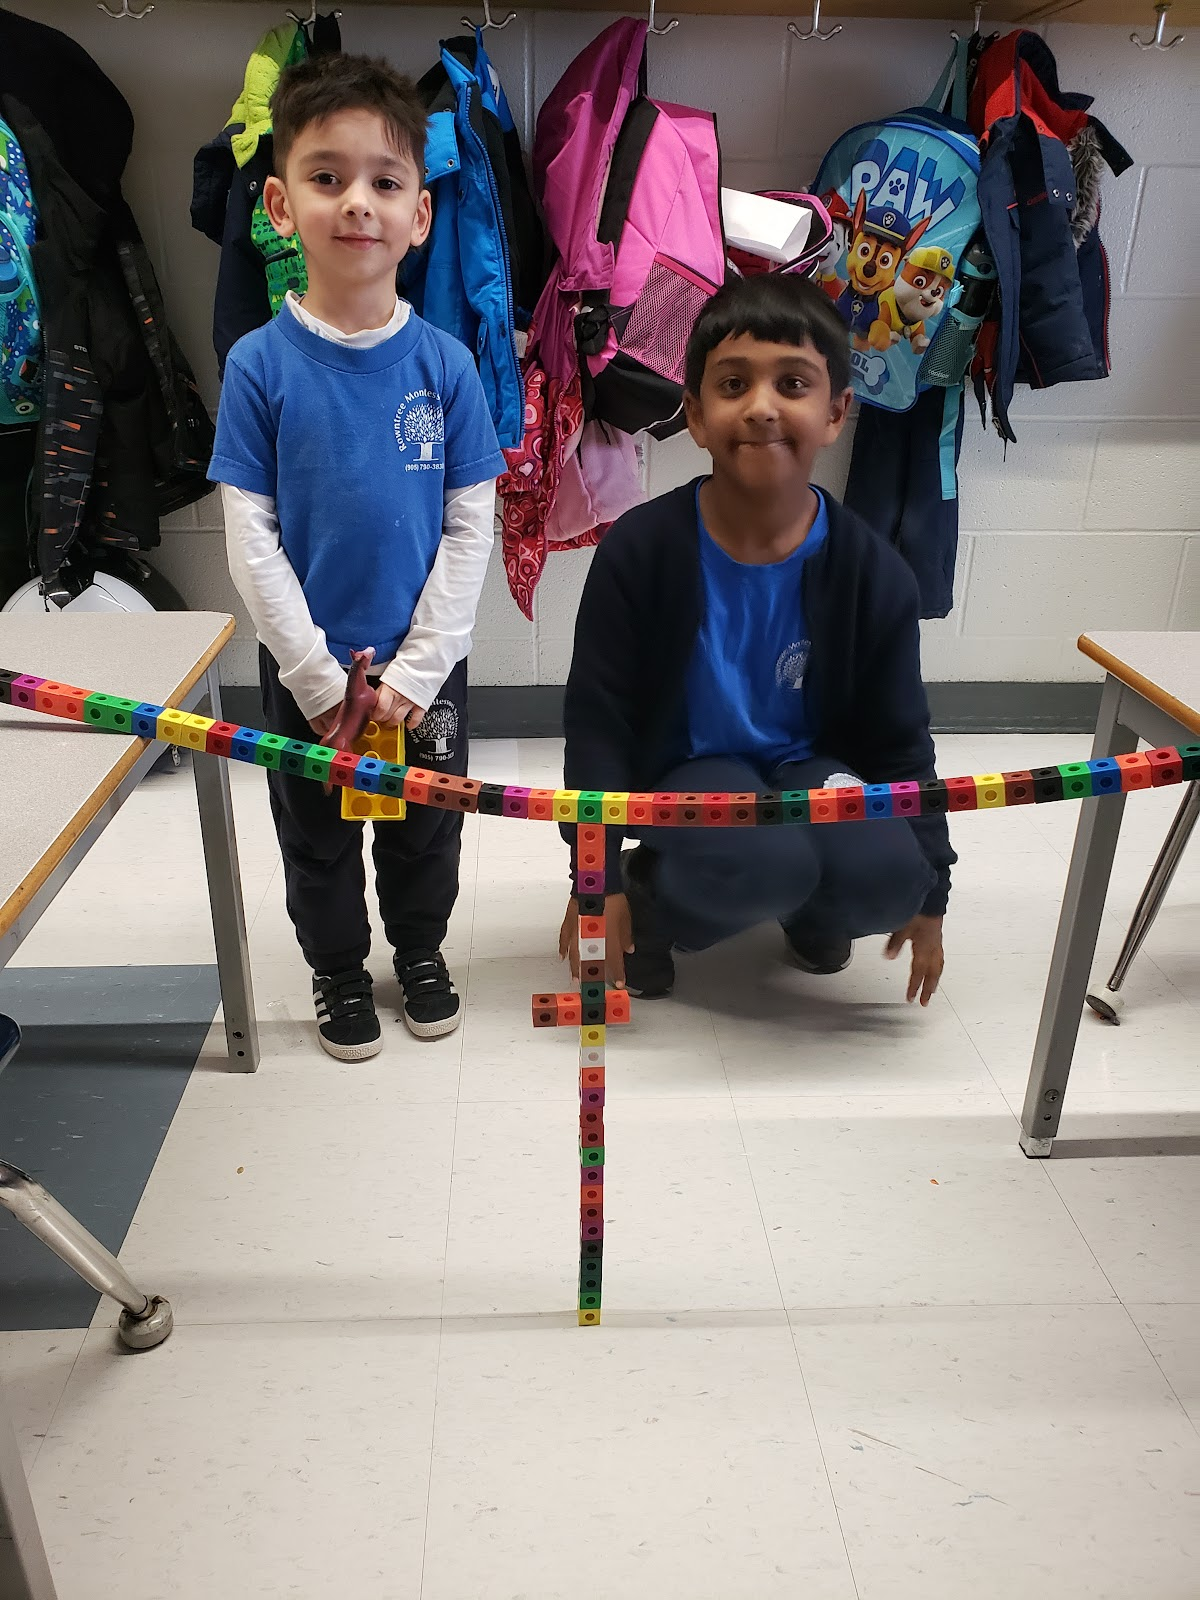 Kindergarten and Grade 1 student at Rowntree Montessori Schools collaboarating on a STEM project bridge.